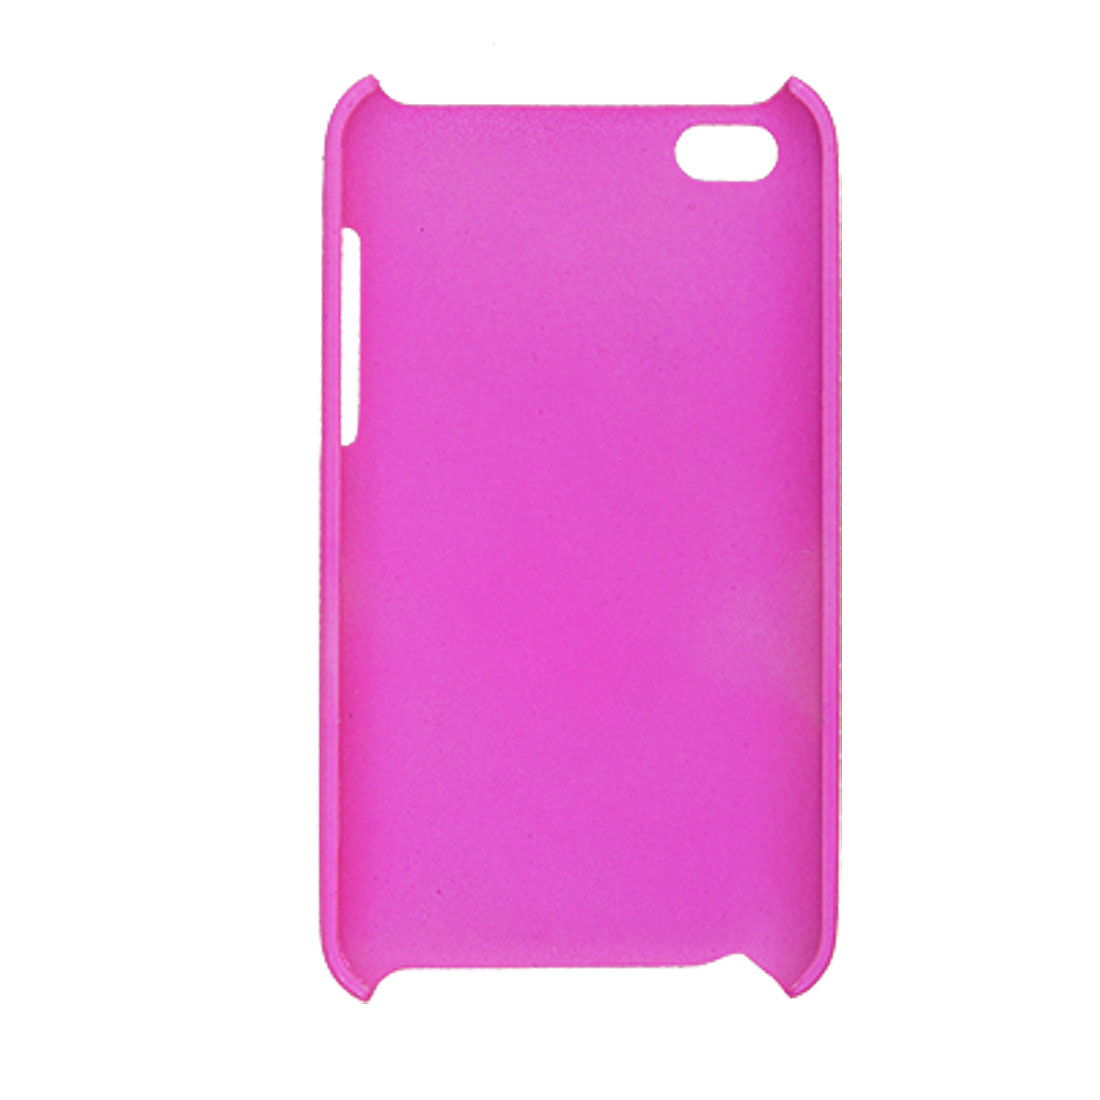 Amaranth Pink Rubberized Plastic Back Cover Case for iPod Touch 4